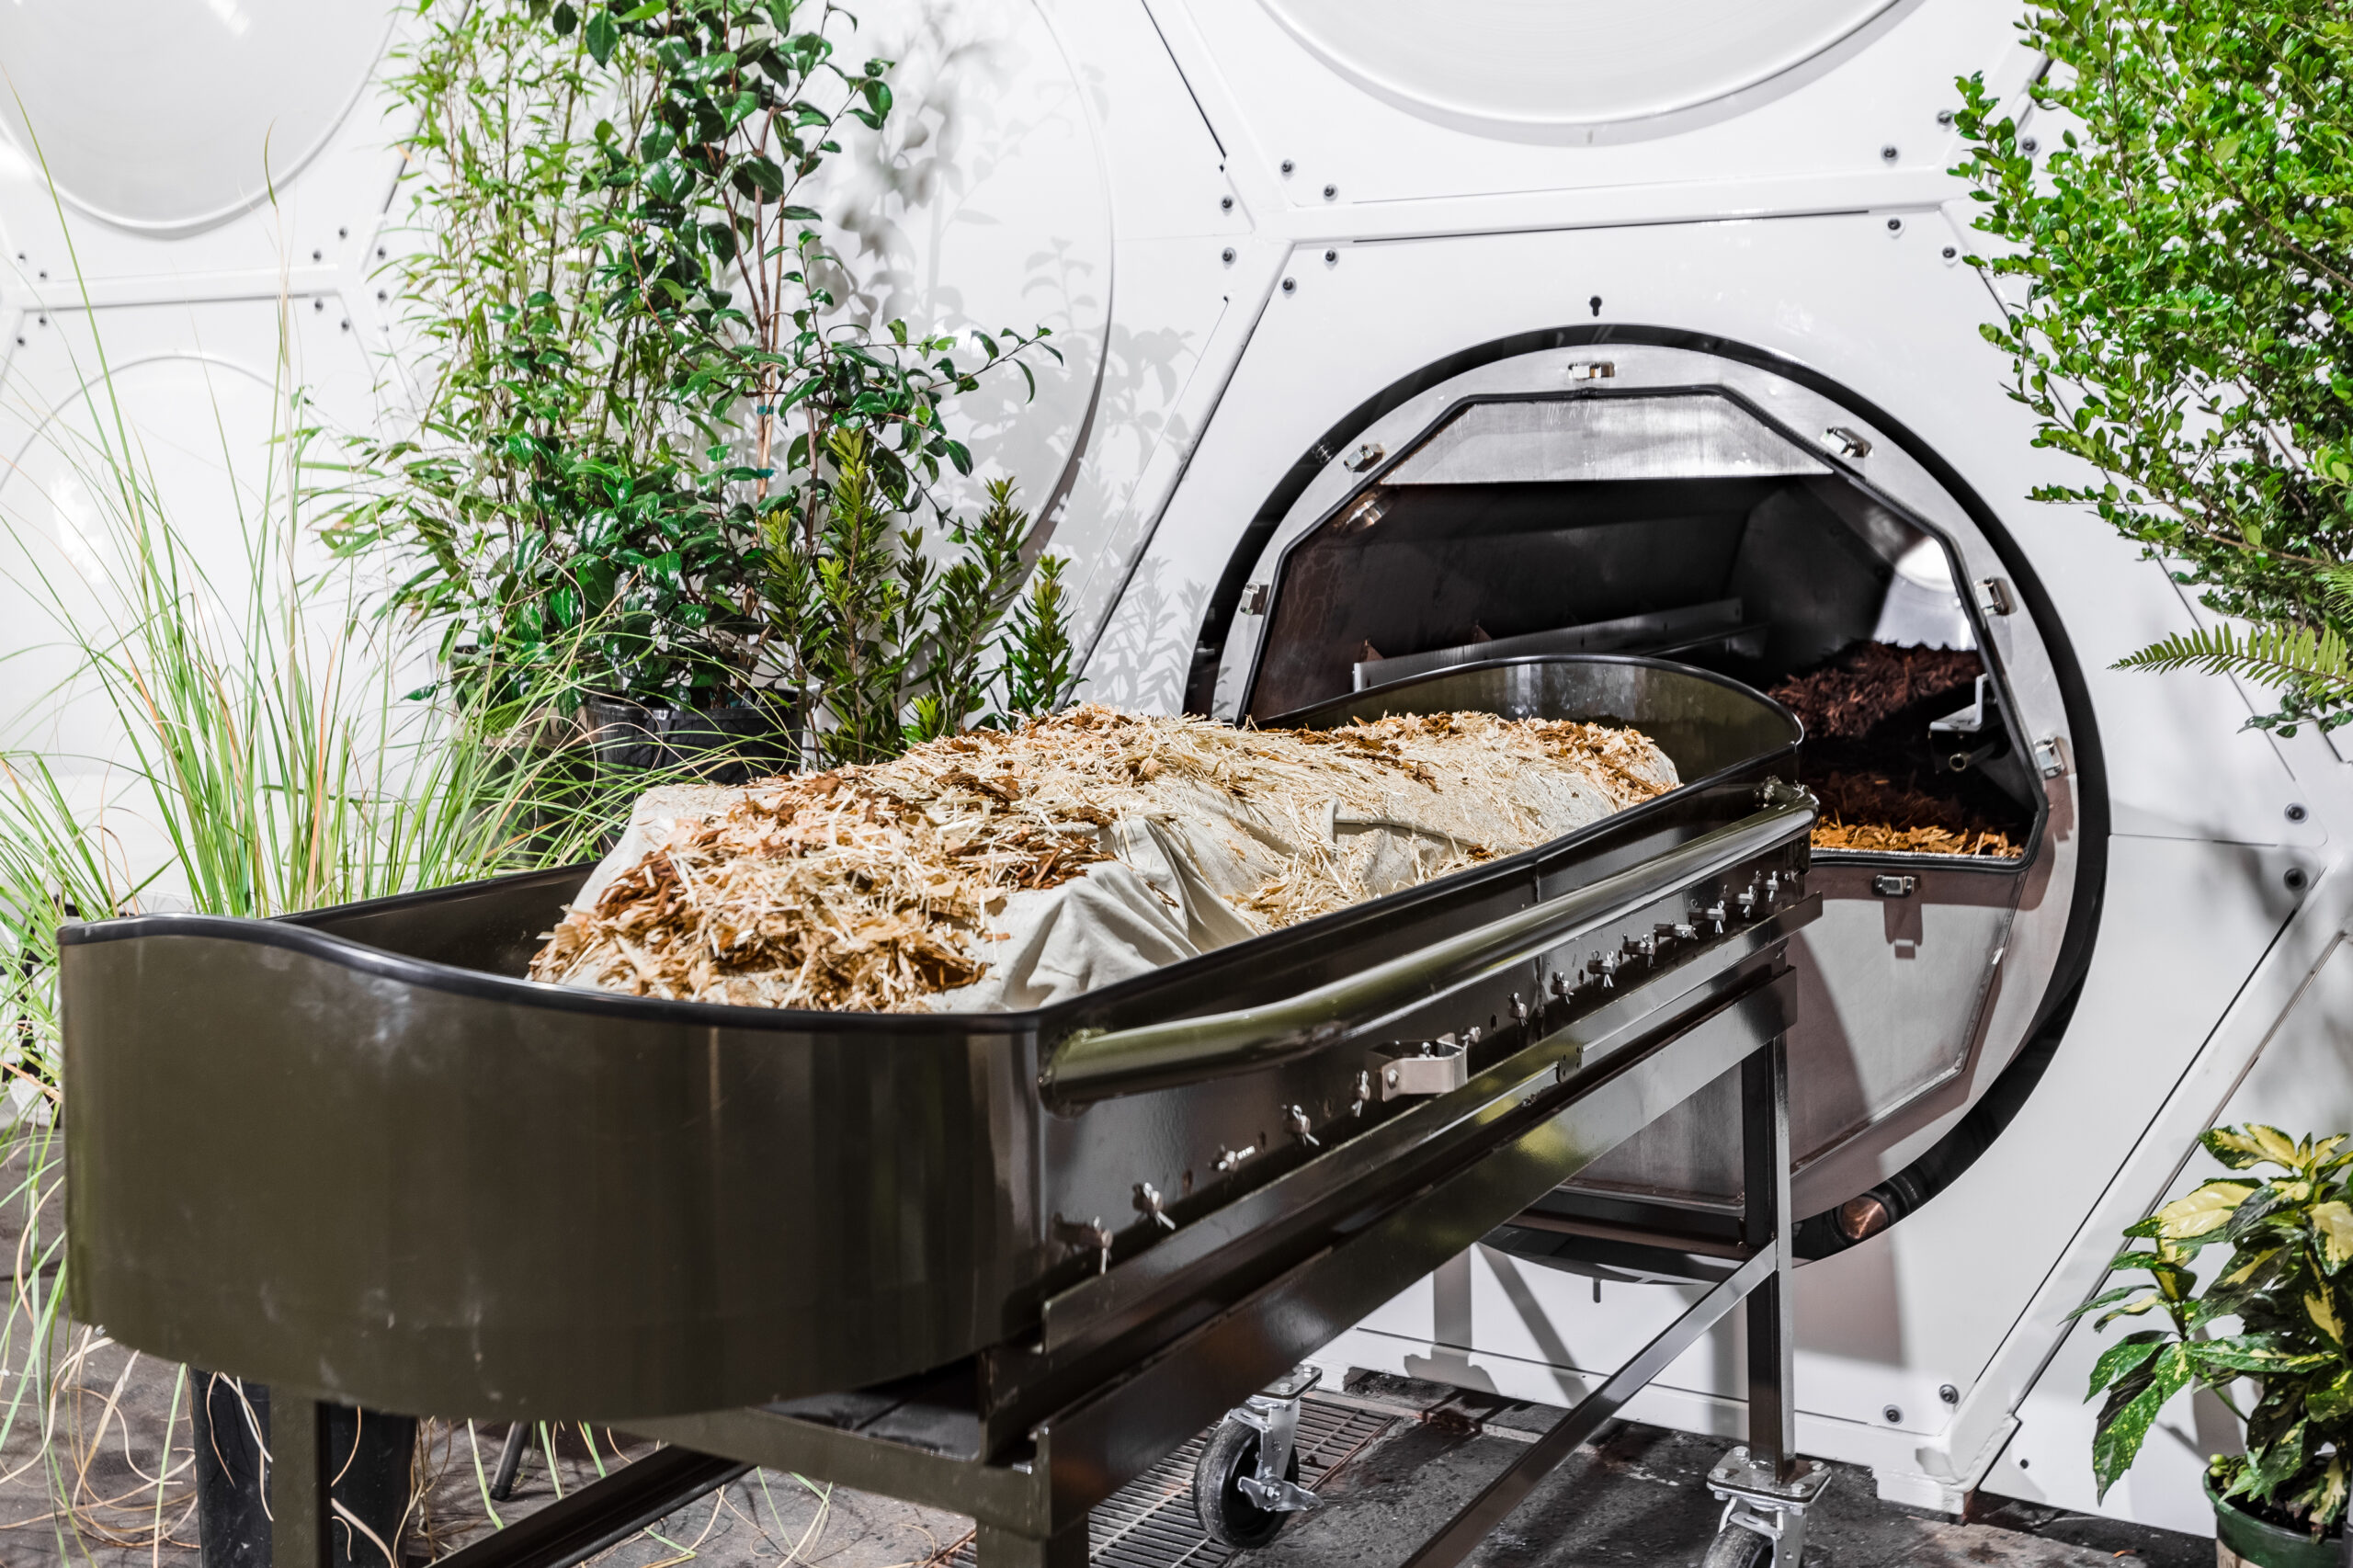 Human composting is coming to Denver